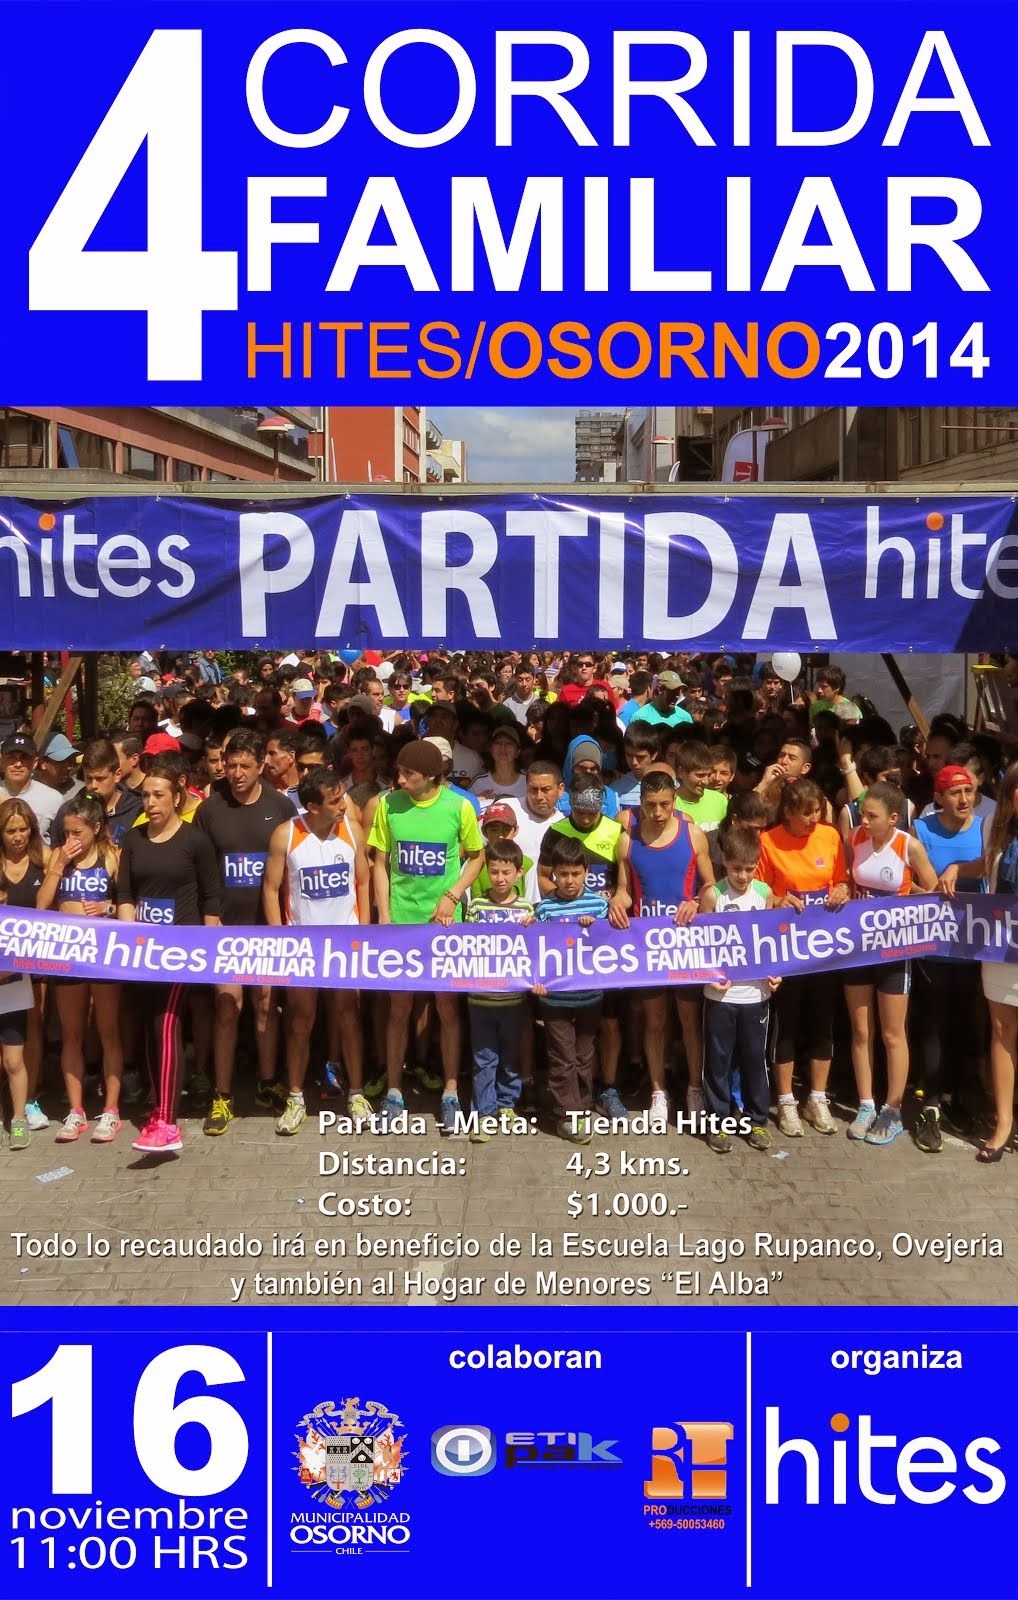 CORRIDA FAMILIAR HITES